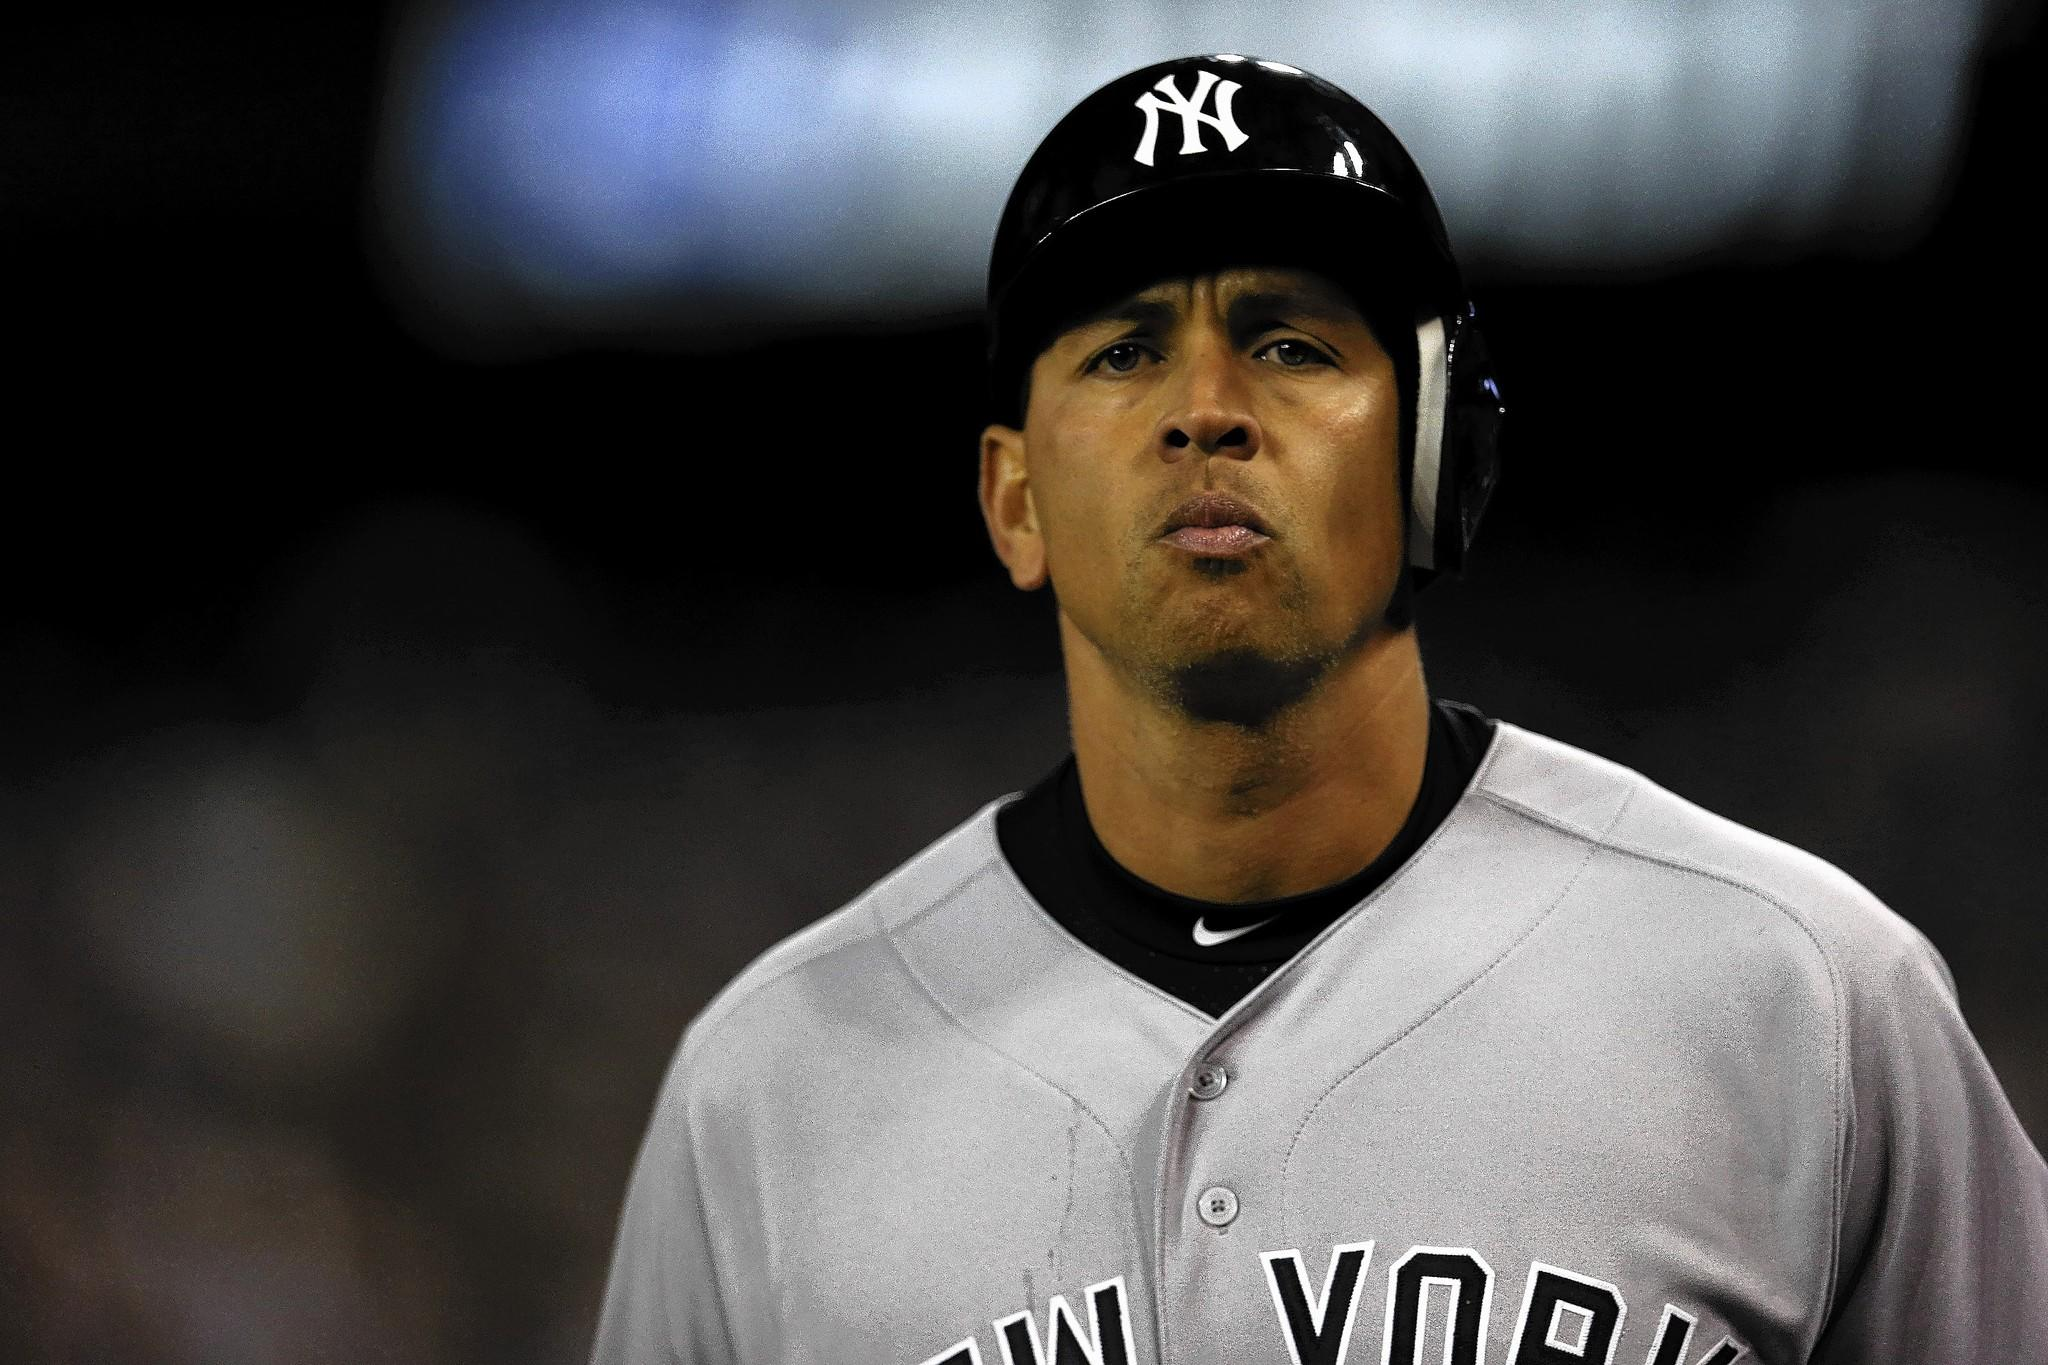 Derek Jeter said at the Yankees' minor league complex in Tampa, Fla., on Monday, the club has to move on since third baseman Alex Rodriguez (above) accepted his year-long suspension.